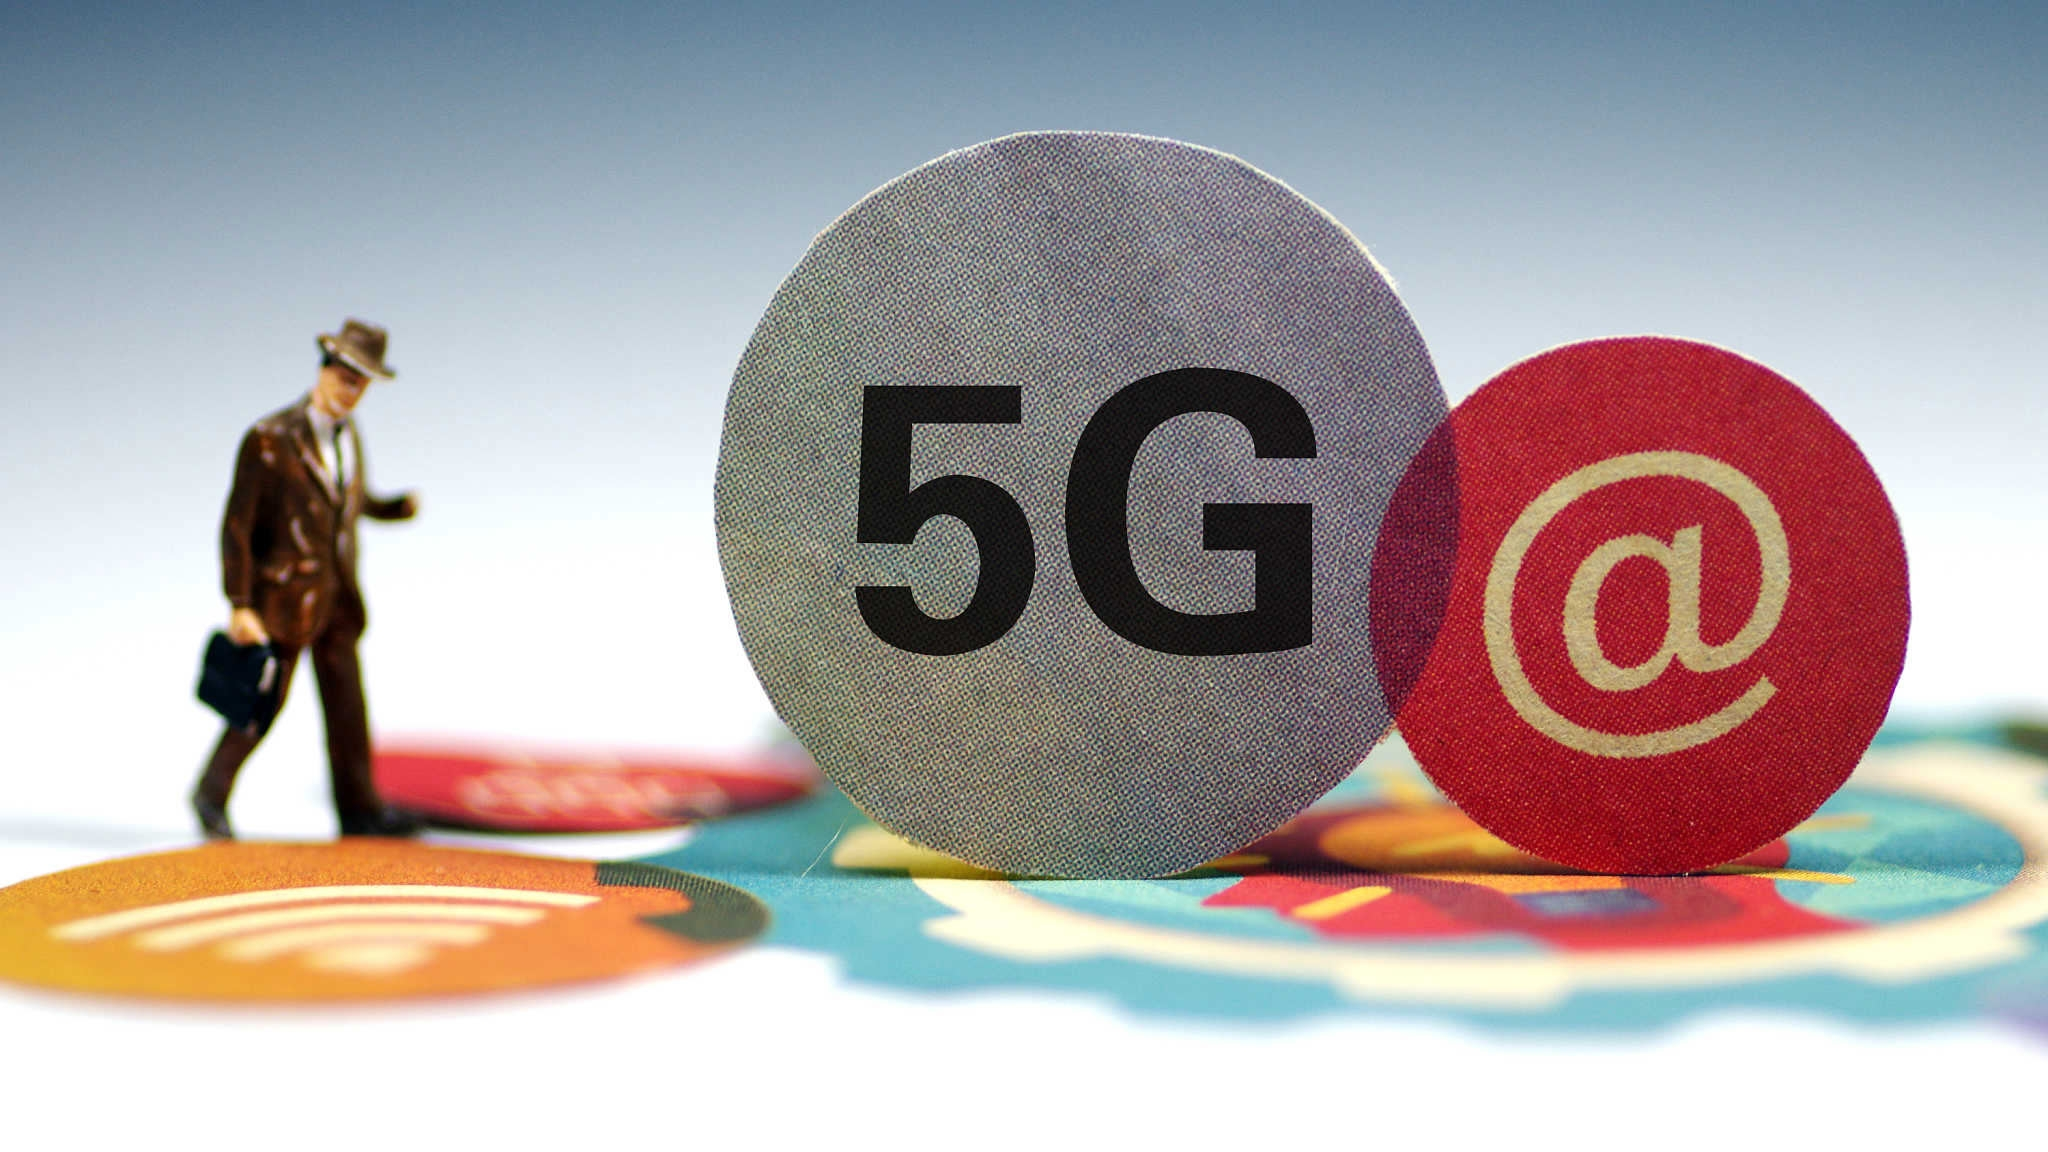 Beijing to host PT Expo to showcase 5G technology